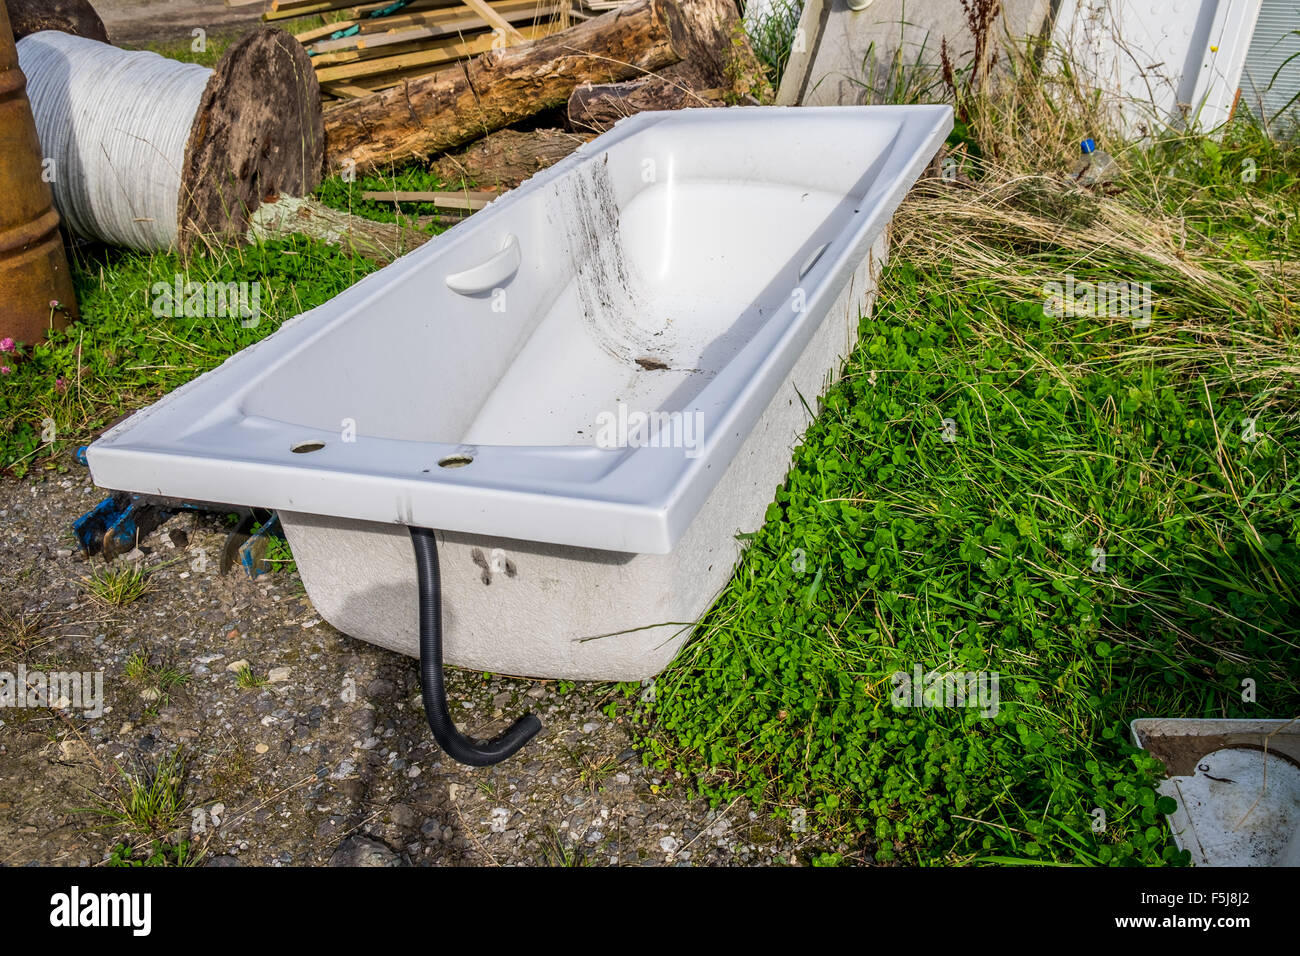 Old Bath In Field Stock Photos & Old Bath In Field Stock Images - Alamy